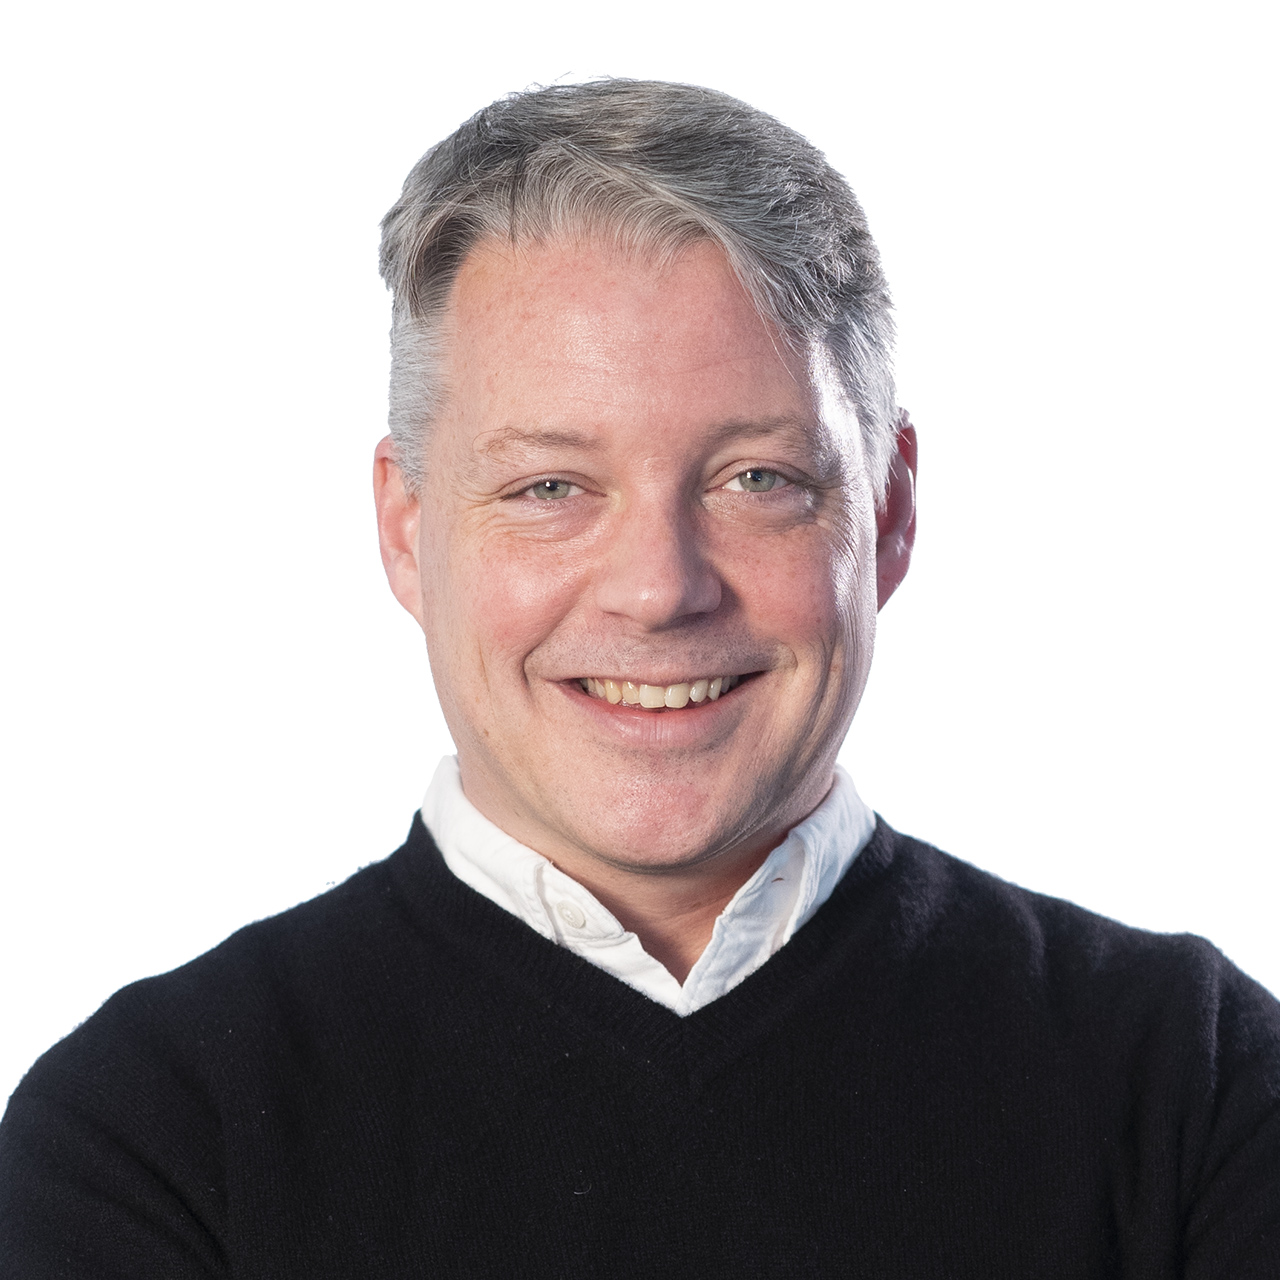 BRENDAN GALLAGHER - CHIEF CONNECTED HEALTH OFFICER